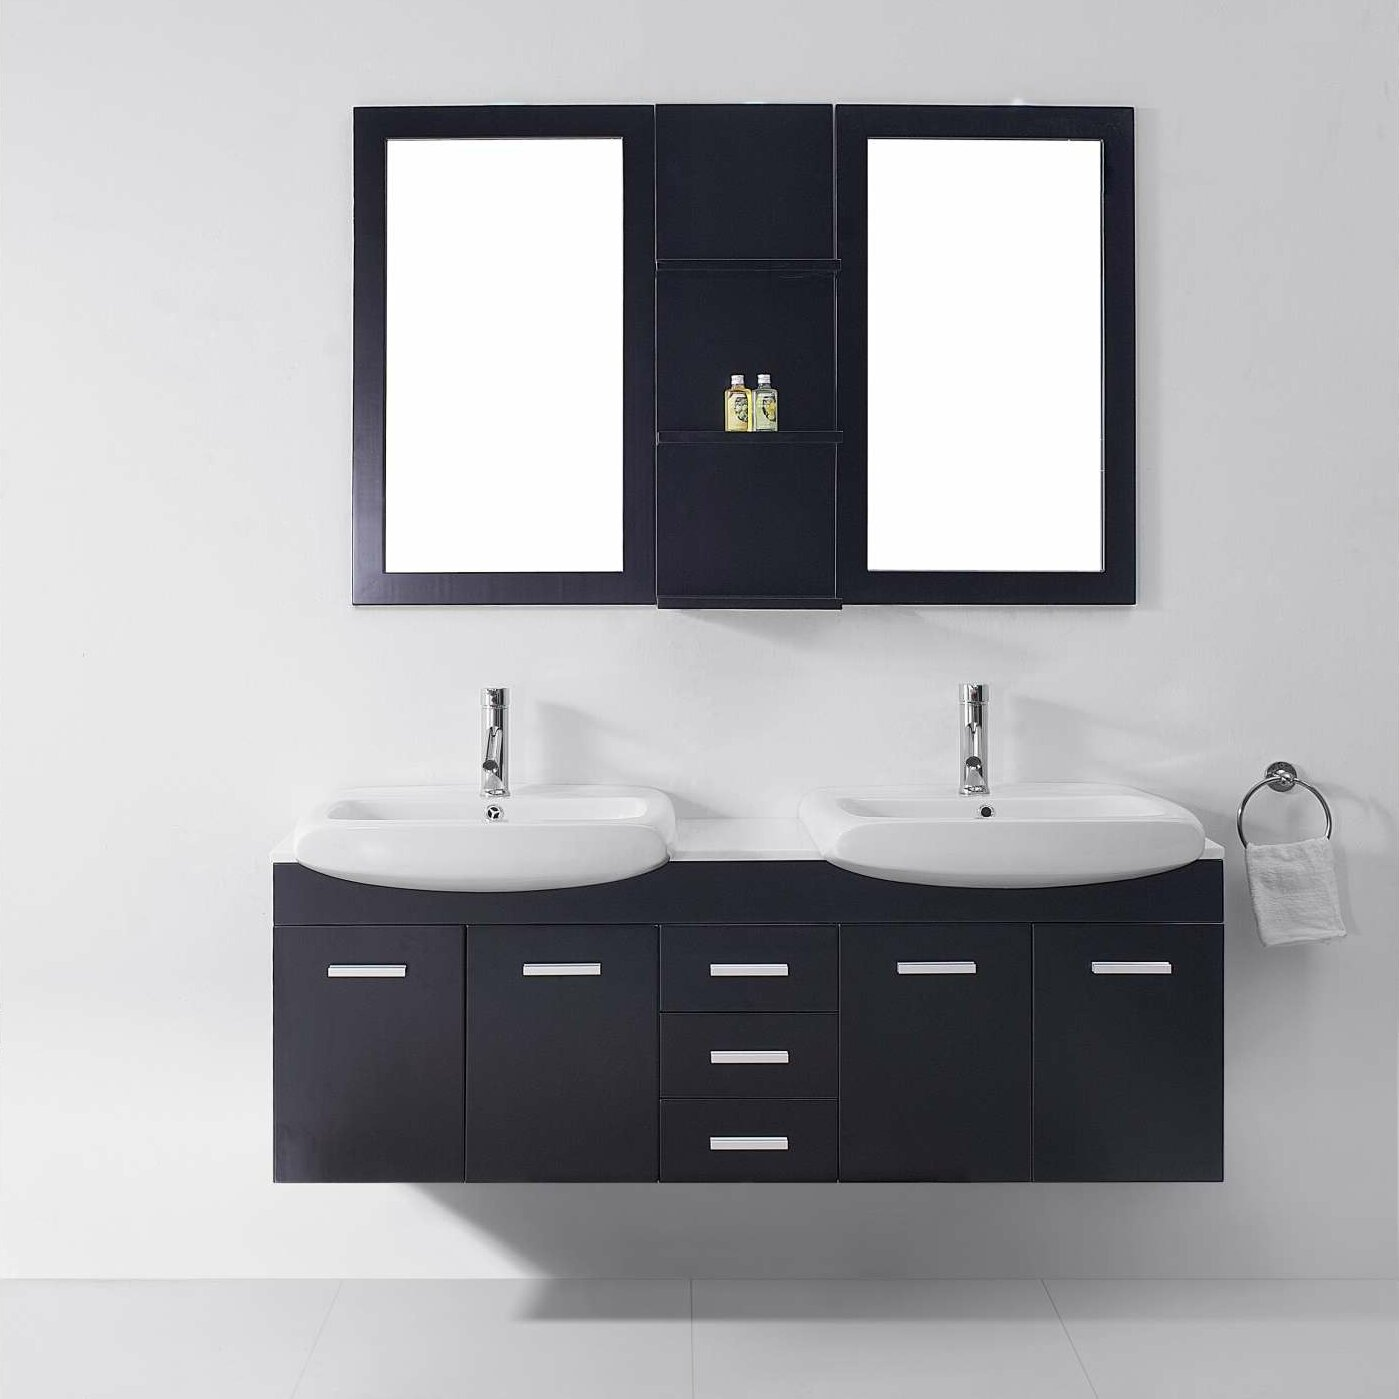 Amazing They Look Stunning And Classic With Ornaments, And Will Be A Perfect Decoration In A Romantic Bathroom 5 Multimirrors For An Ultramodern And Stylish Bathroom, Dont Be Hesitate To Add One Multimirrors Or Two They Are Rather